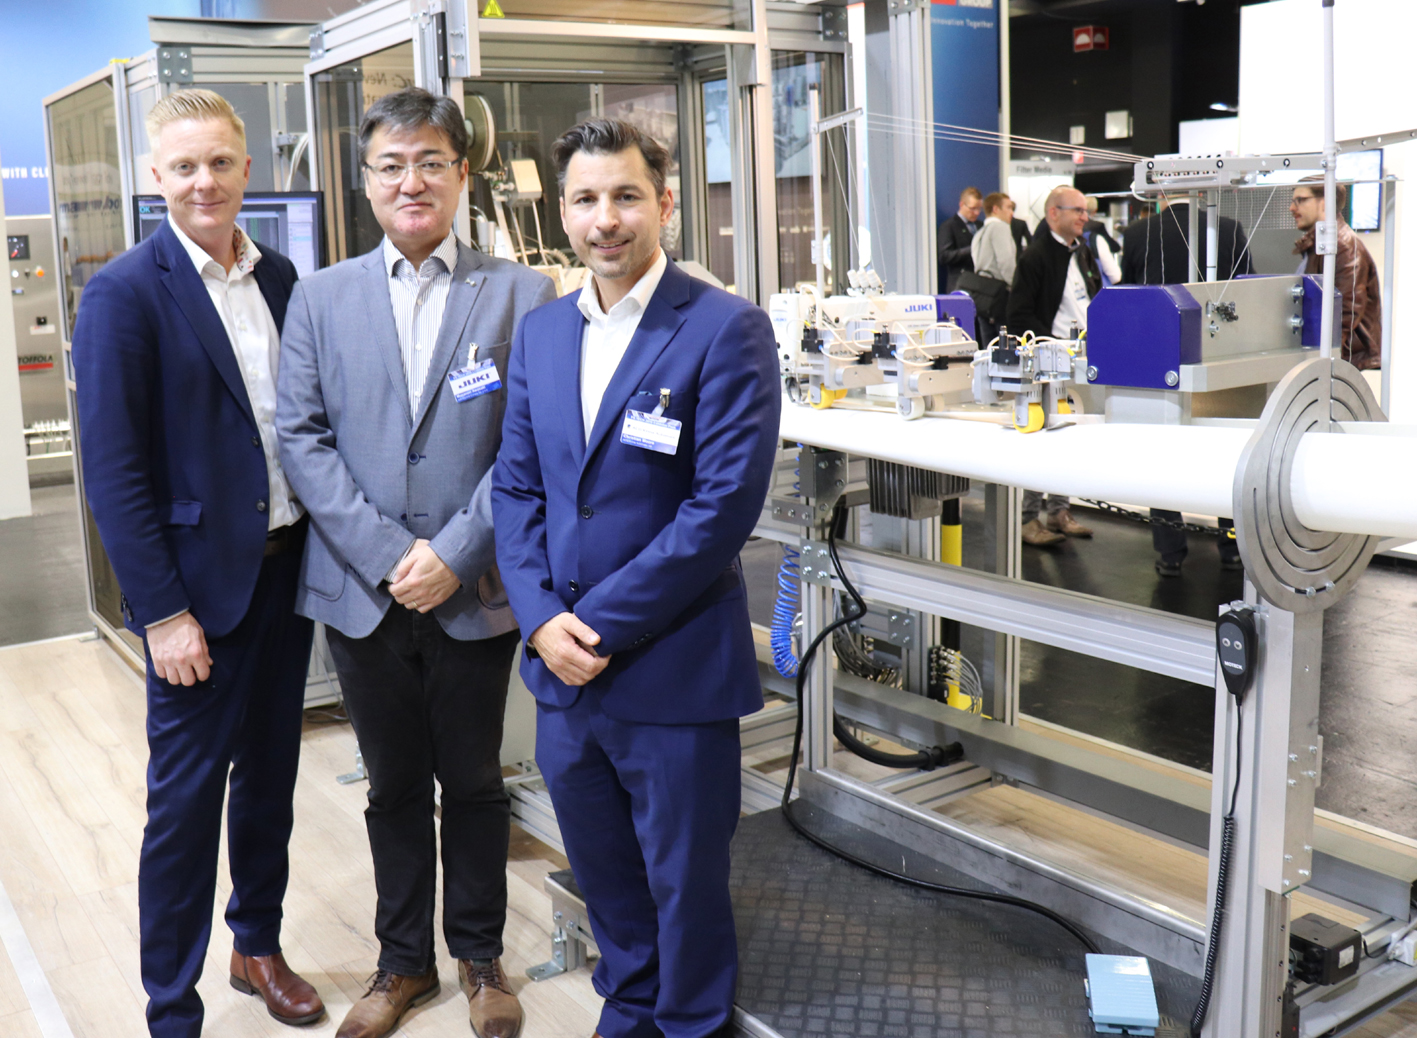 Pictured (left to right) are ACG Nyström Vice-President Thomas Arvidsson, Christian Moore, CEO of ACG Kinna, and Masanori Awasaki, President of Juki Central Europe.